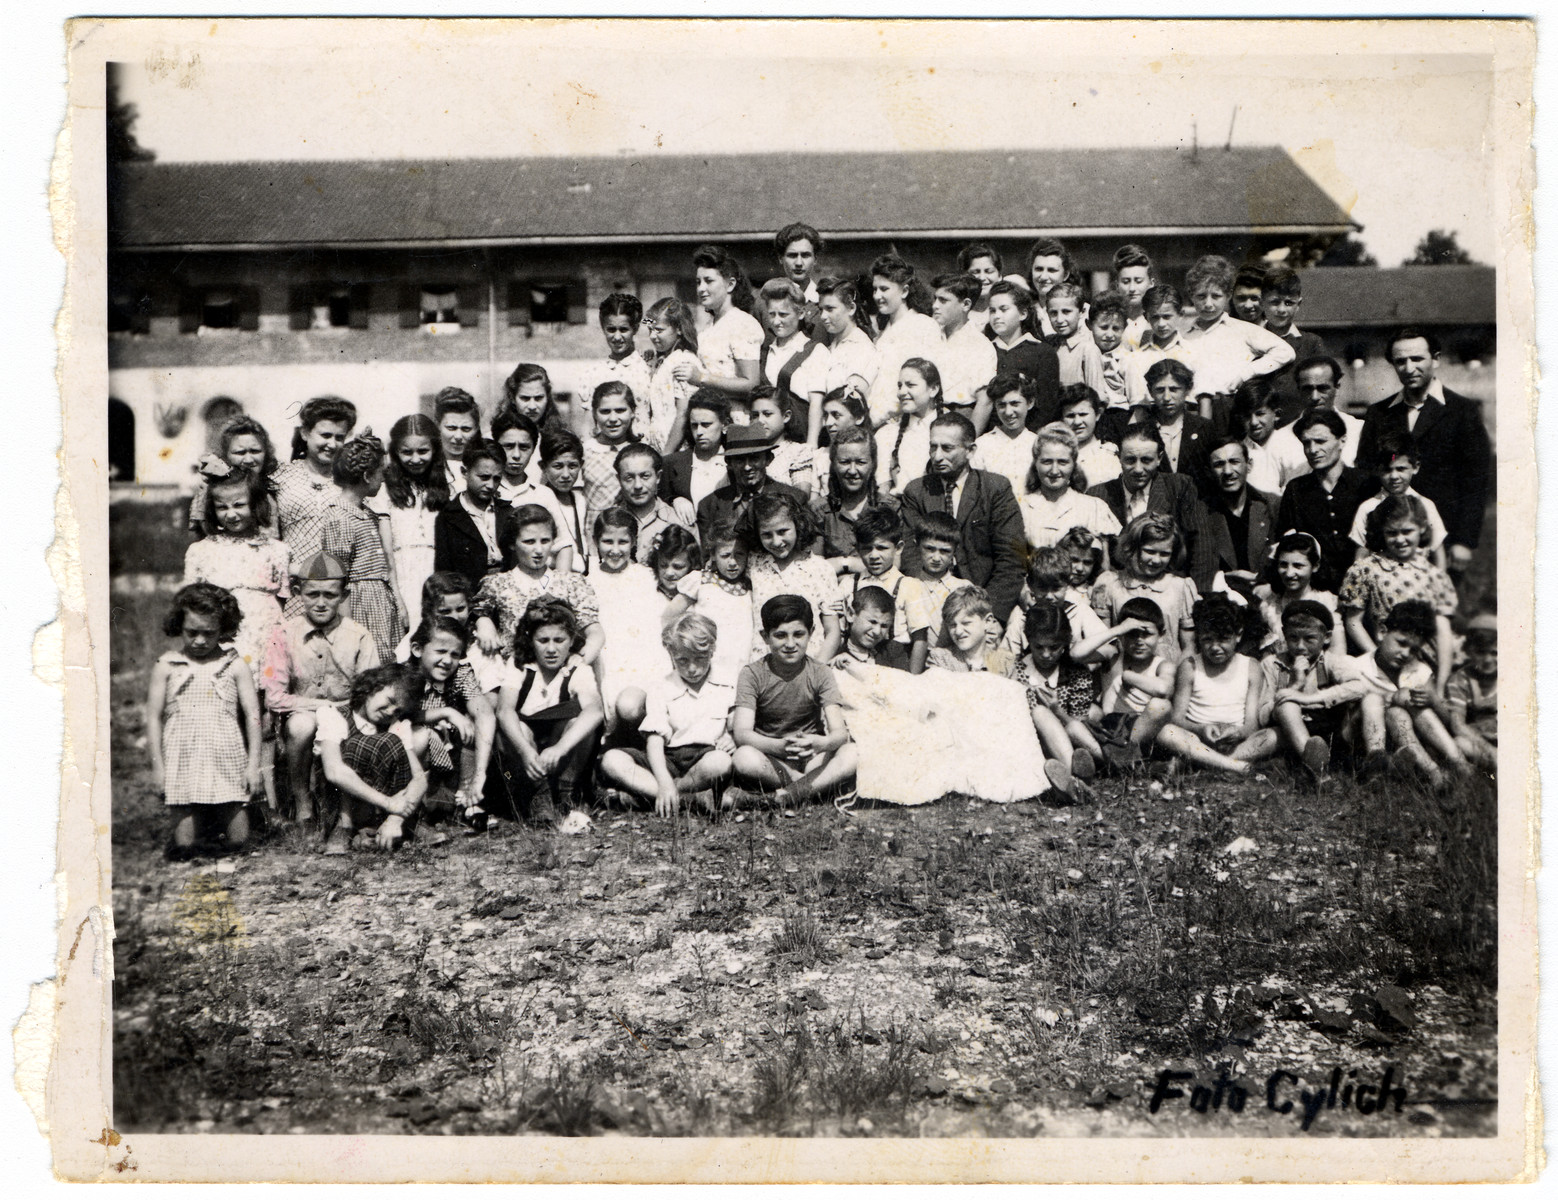 Group portrait of school children in the Feldafing displaced persons' camp.